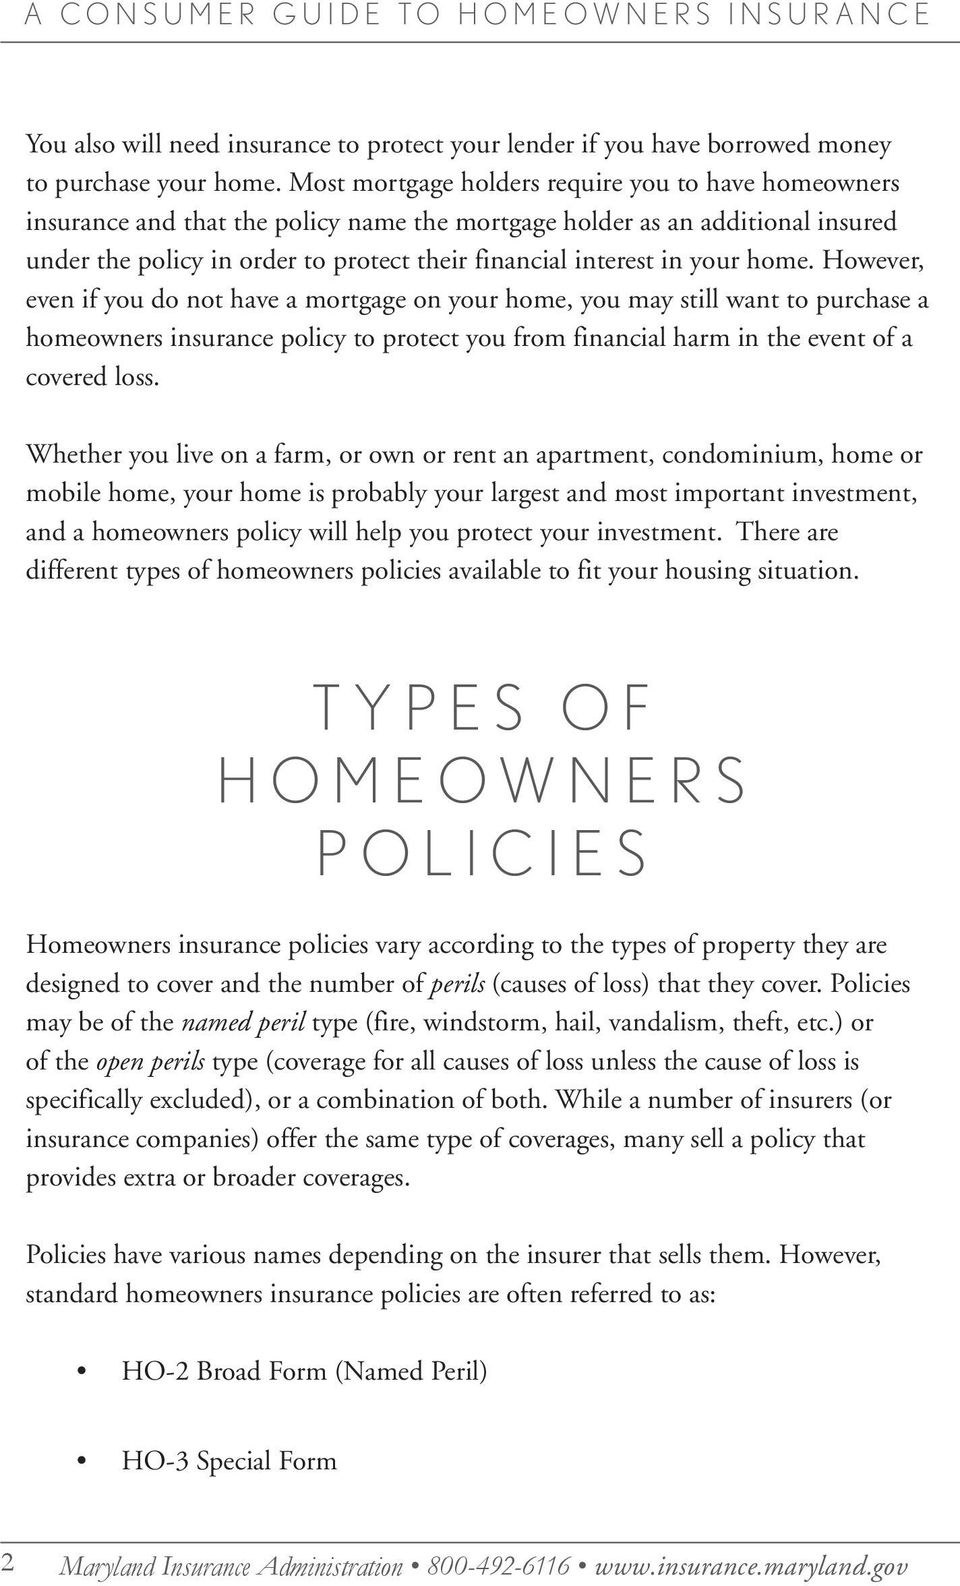 your home. However, even if you do not have a mortgage on your home, you may still want to purchase a homeowners insurance policy to protect you from financial harm in the event of a covered loss.